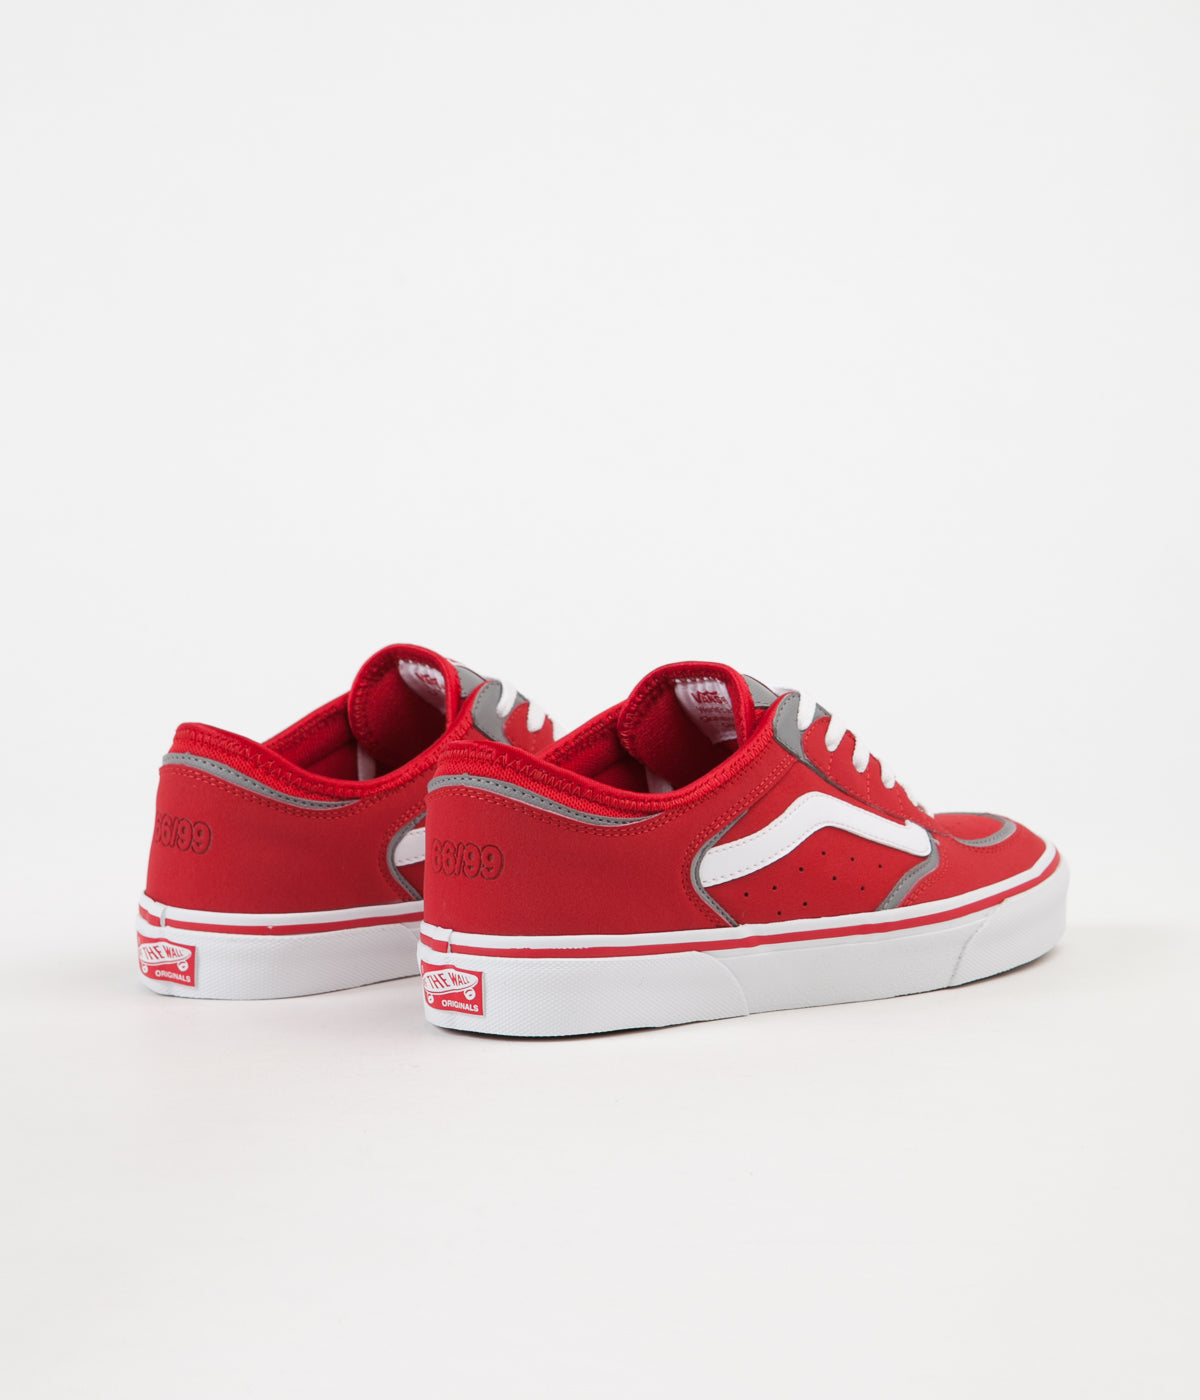 3f5ac1ce915 ... Vans Rowley Classic LX Shoes - Racing Red   White ...